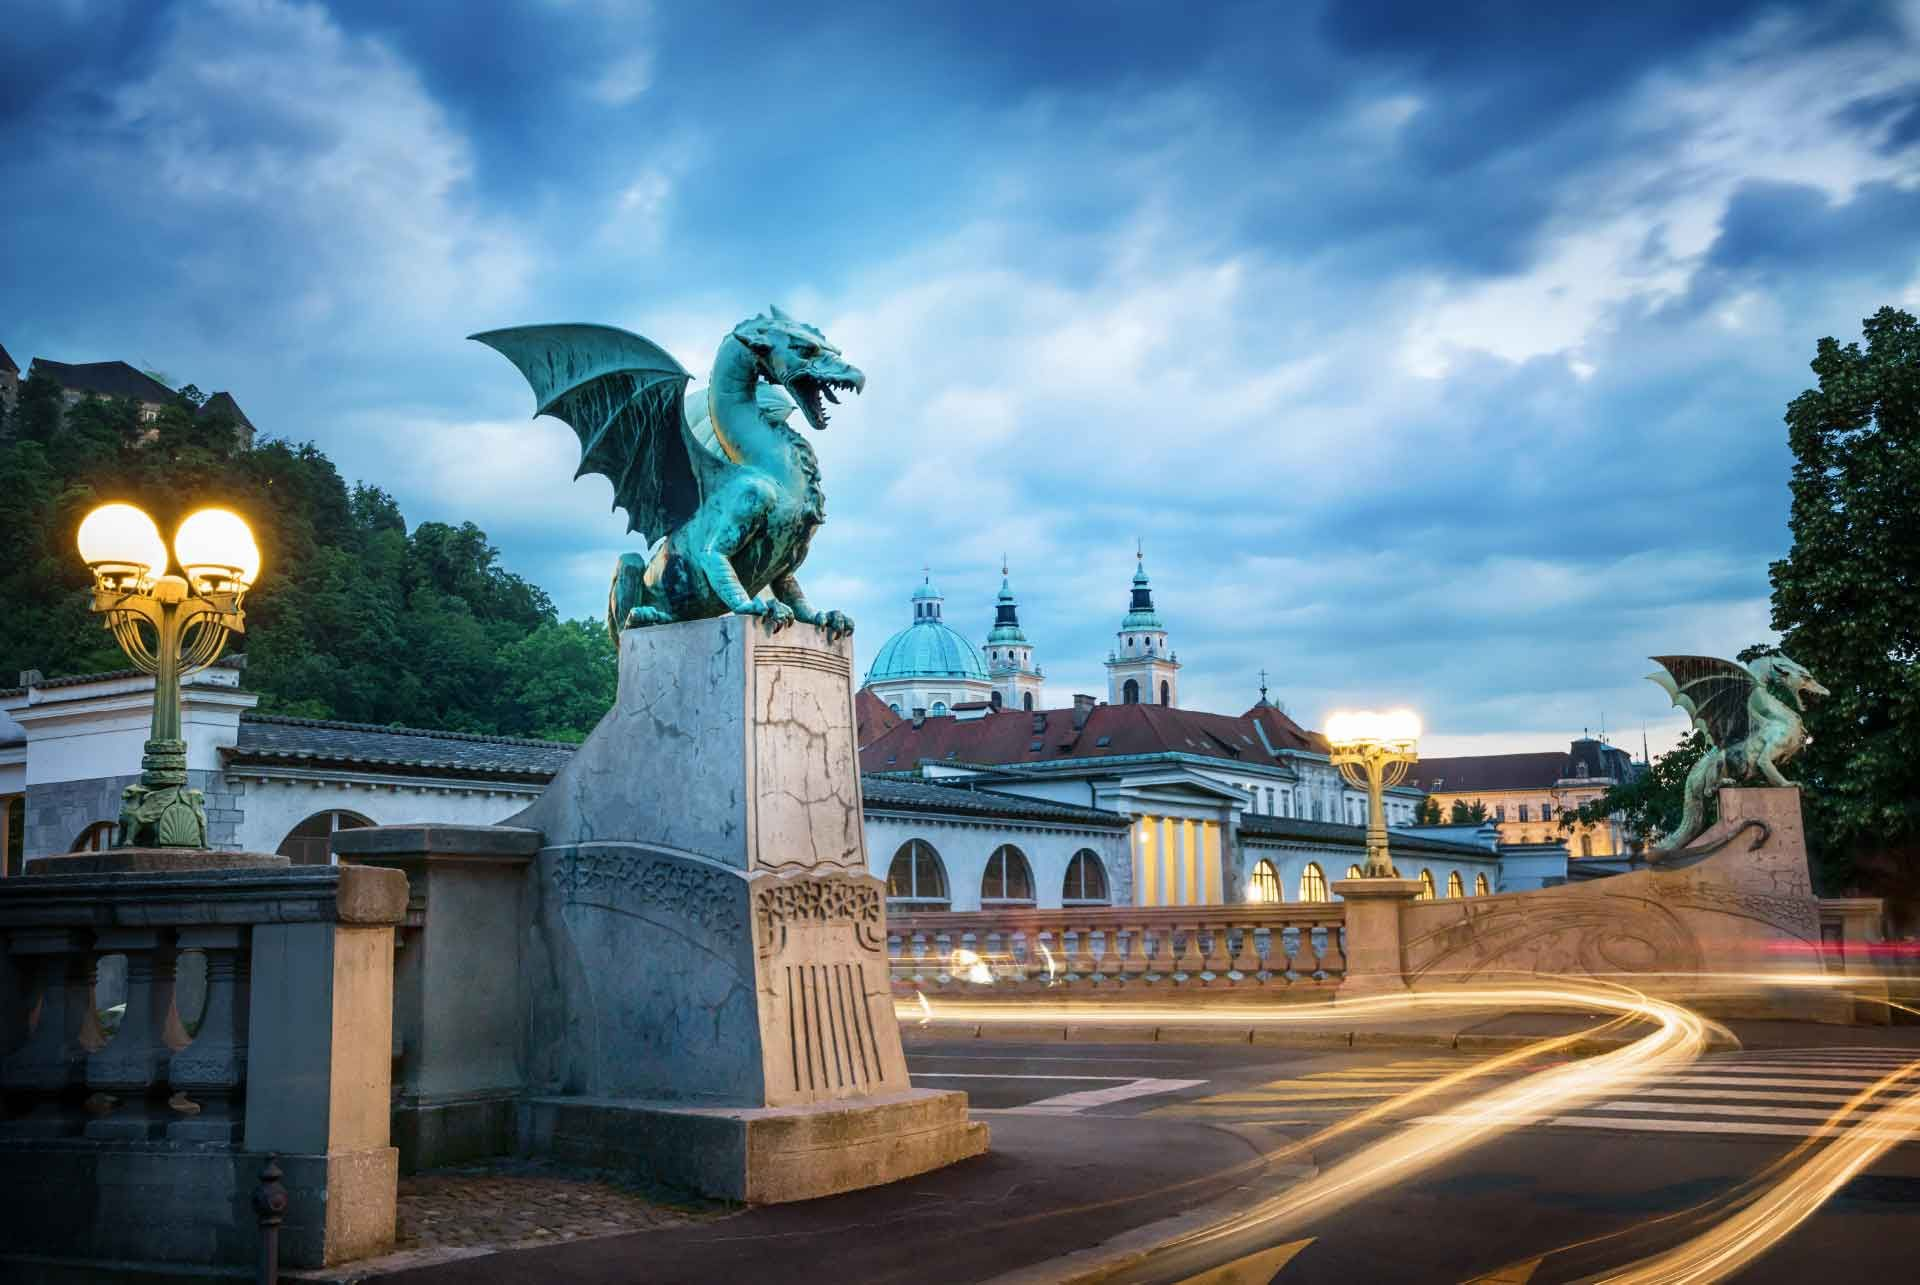 The Dragon Bridge (Zmajski Most)